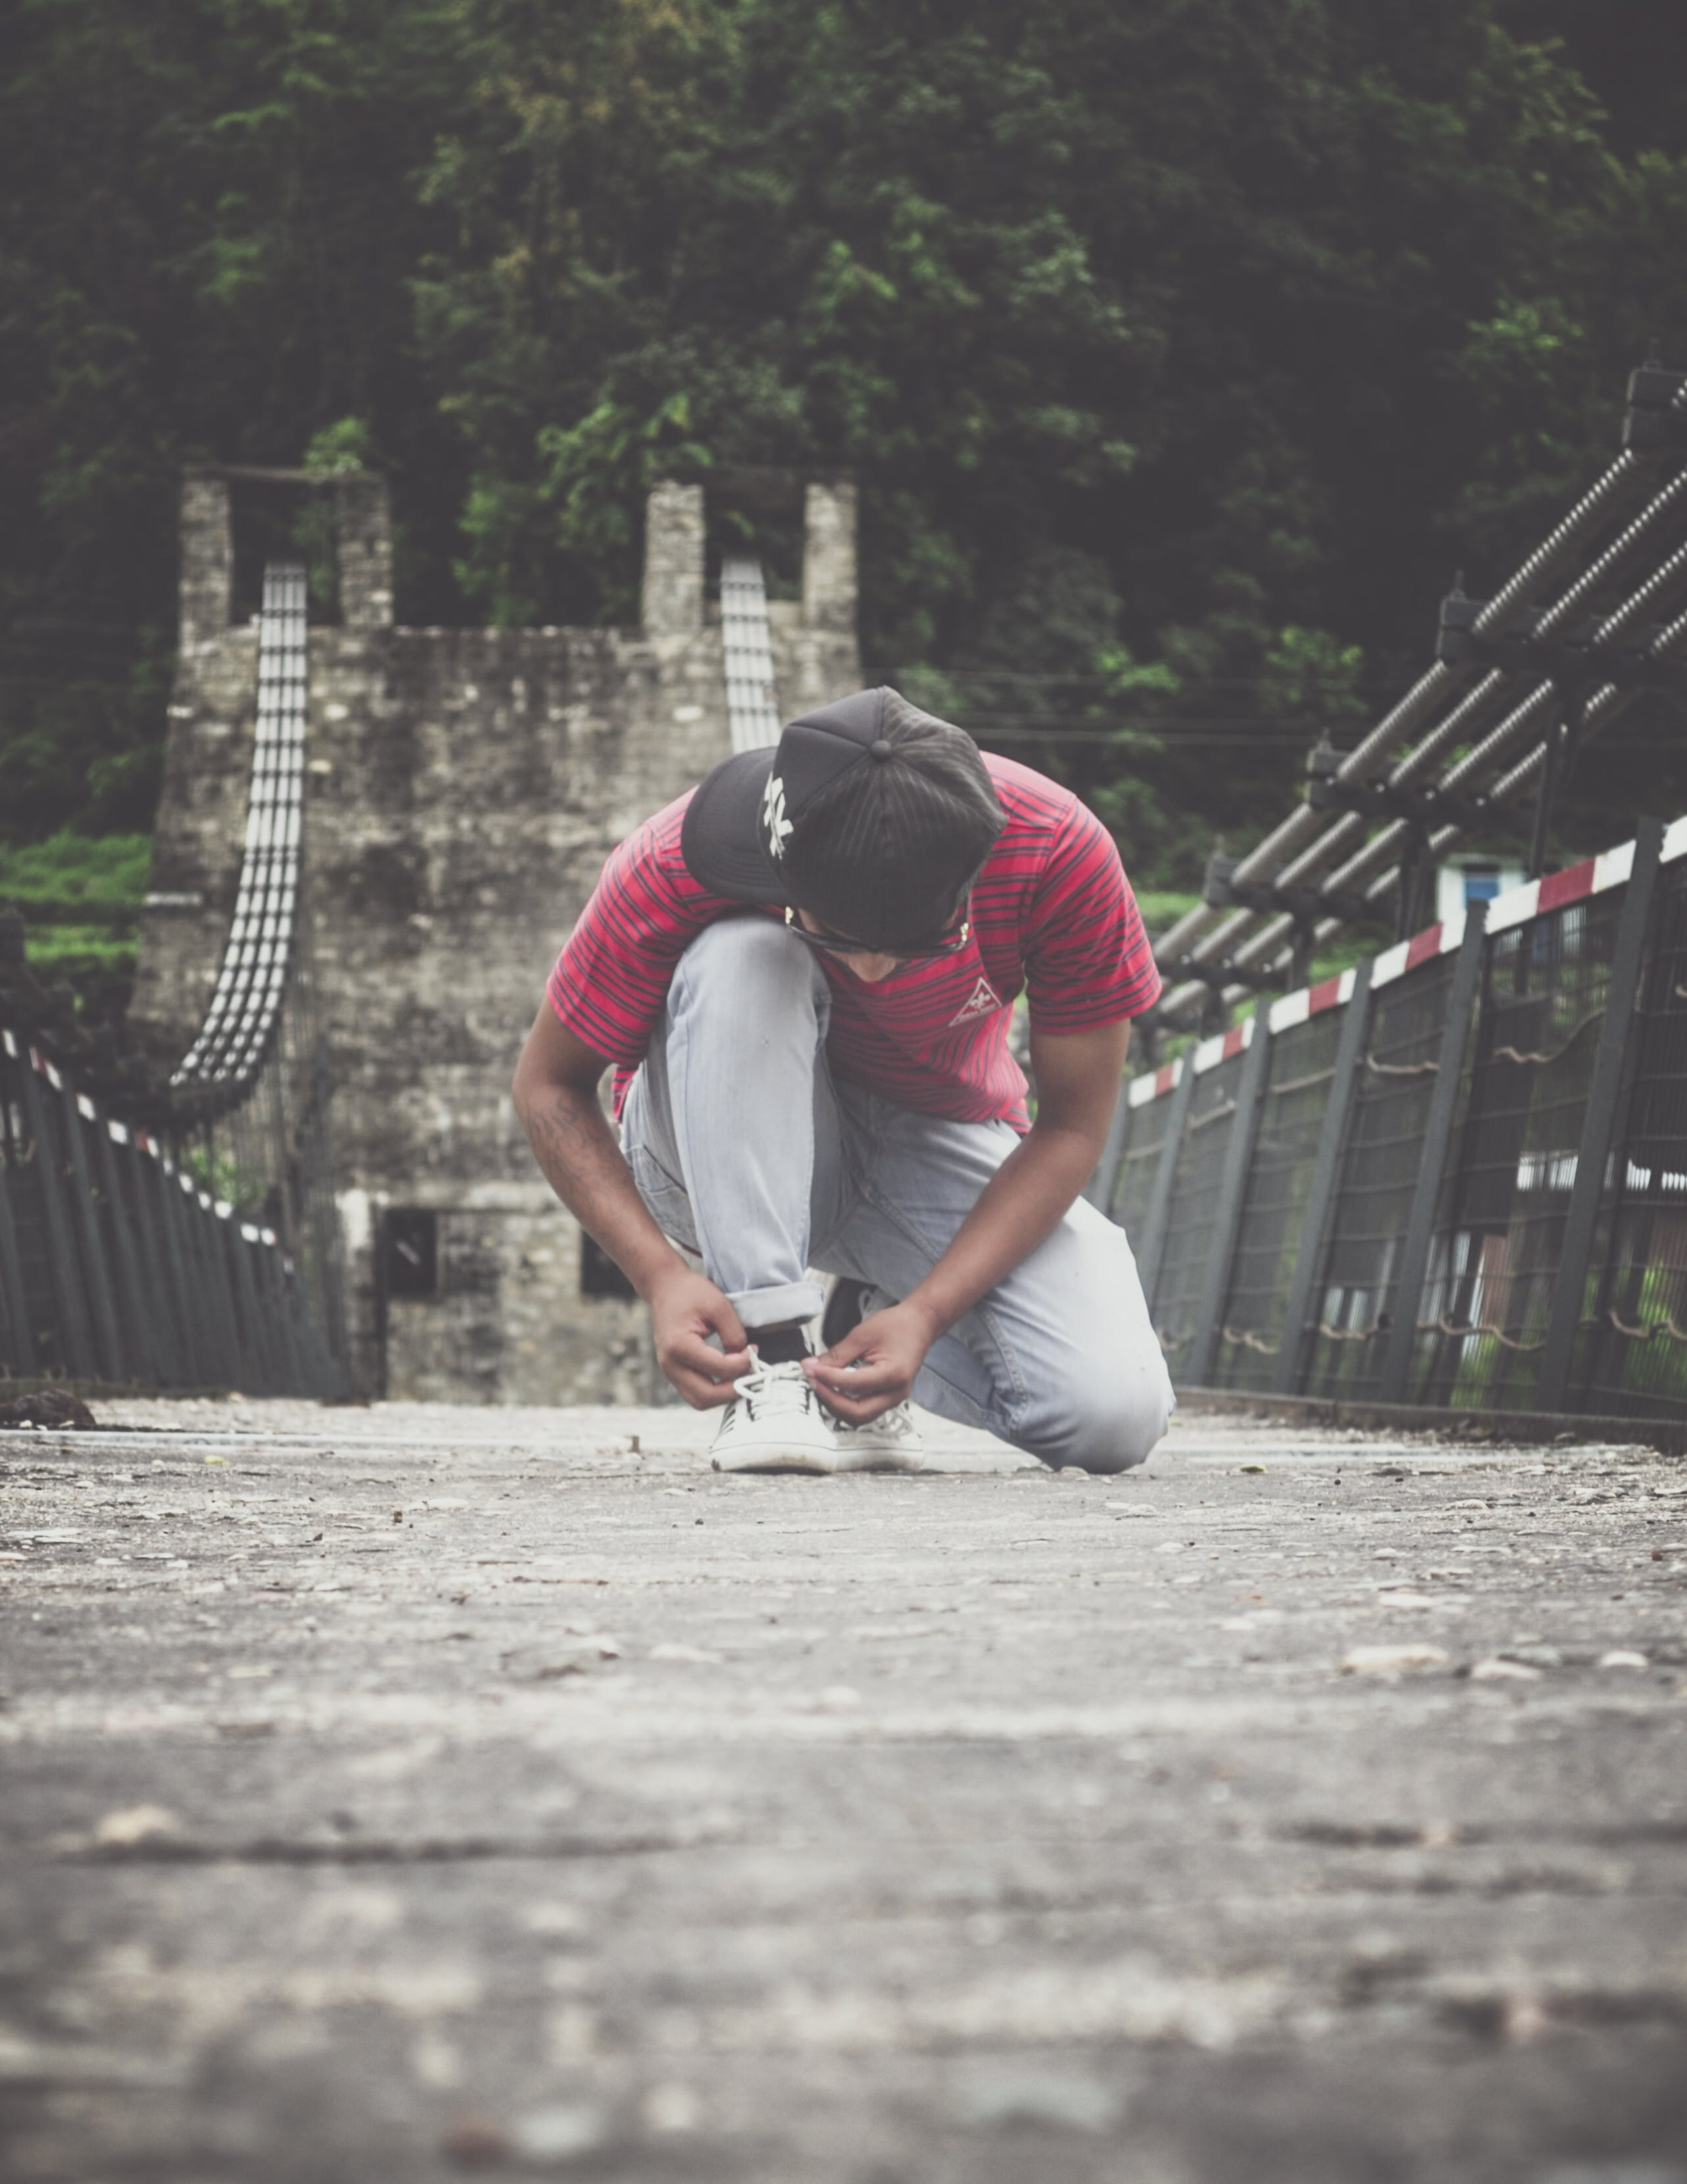 Person Tying His Shoe Lace